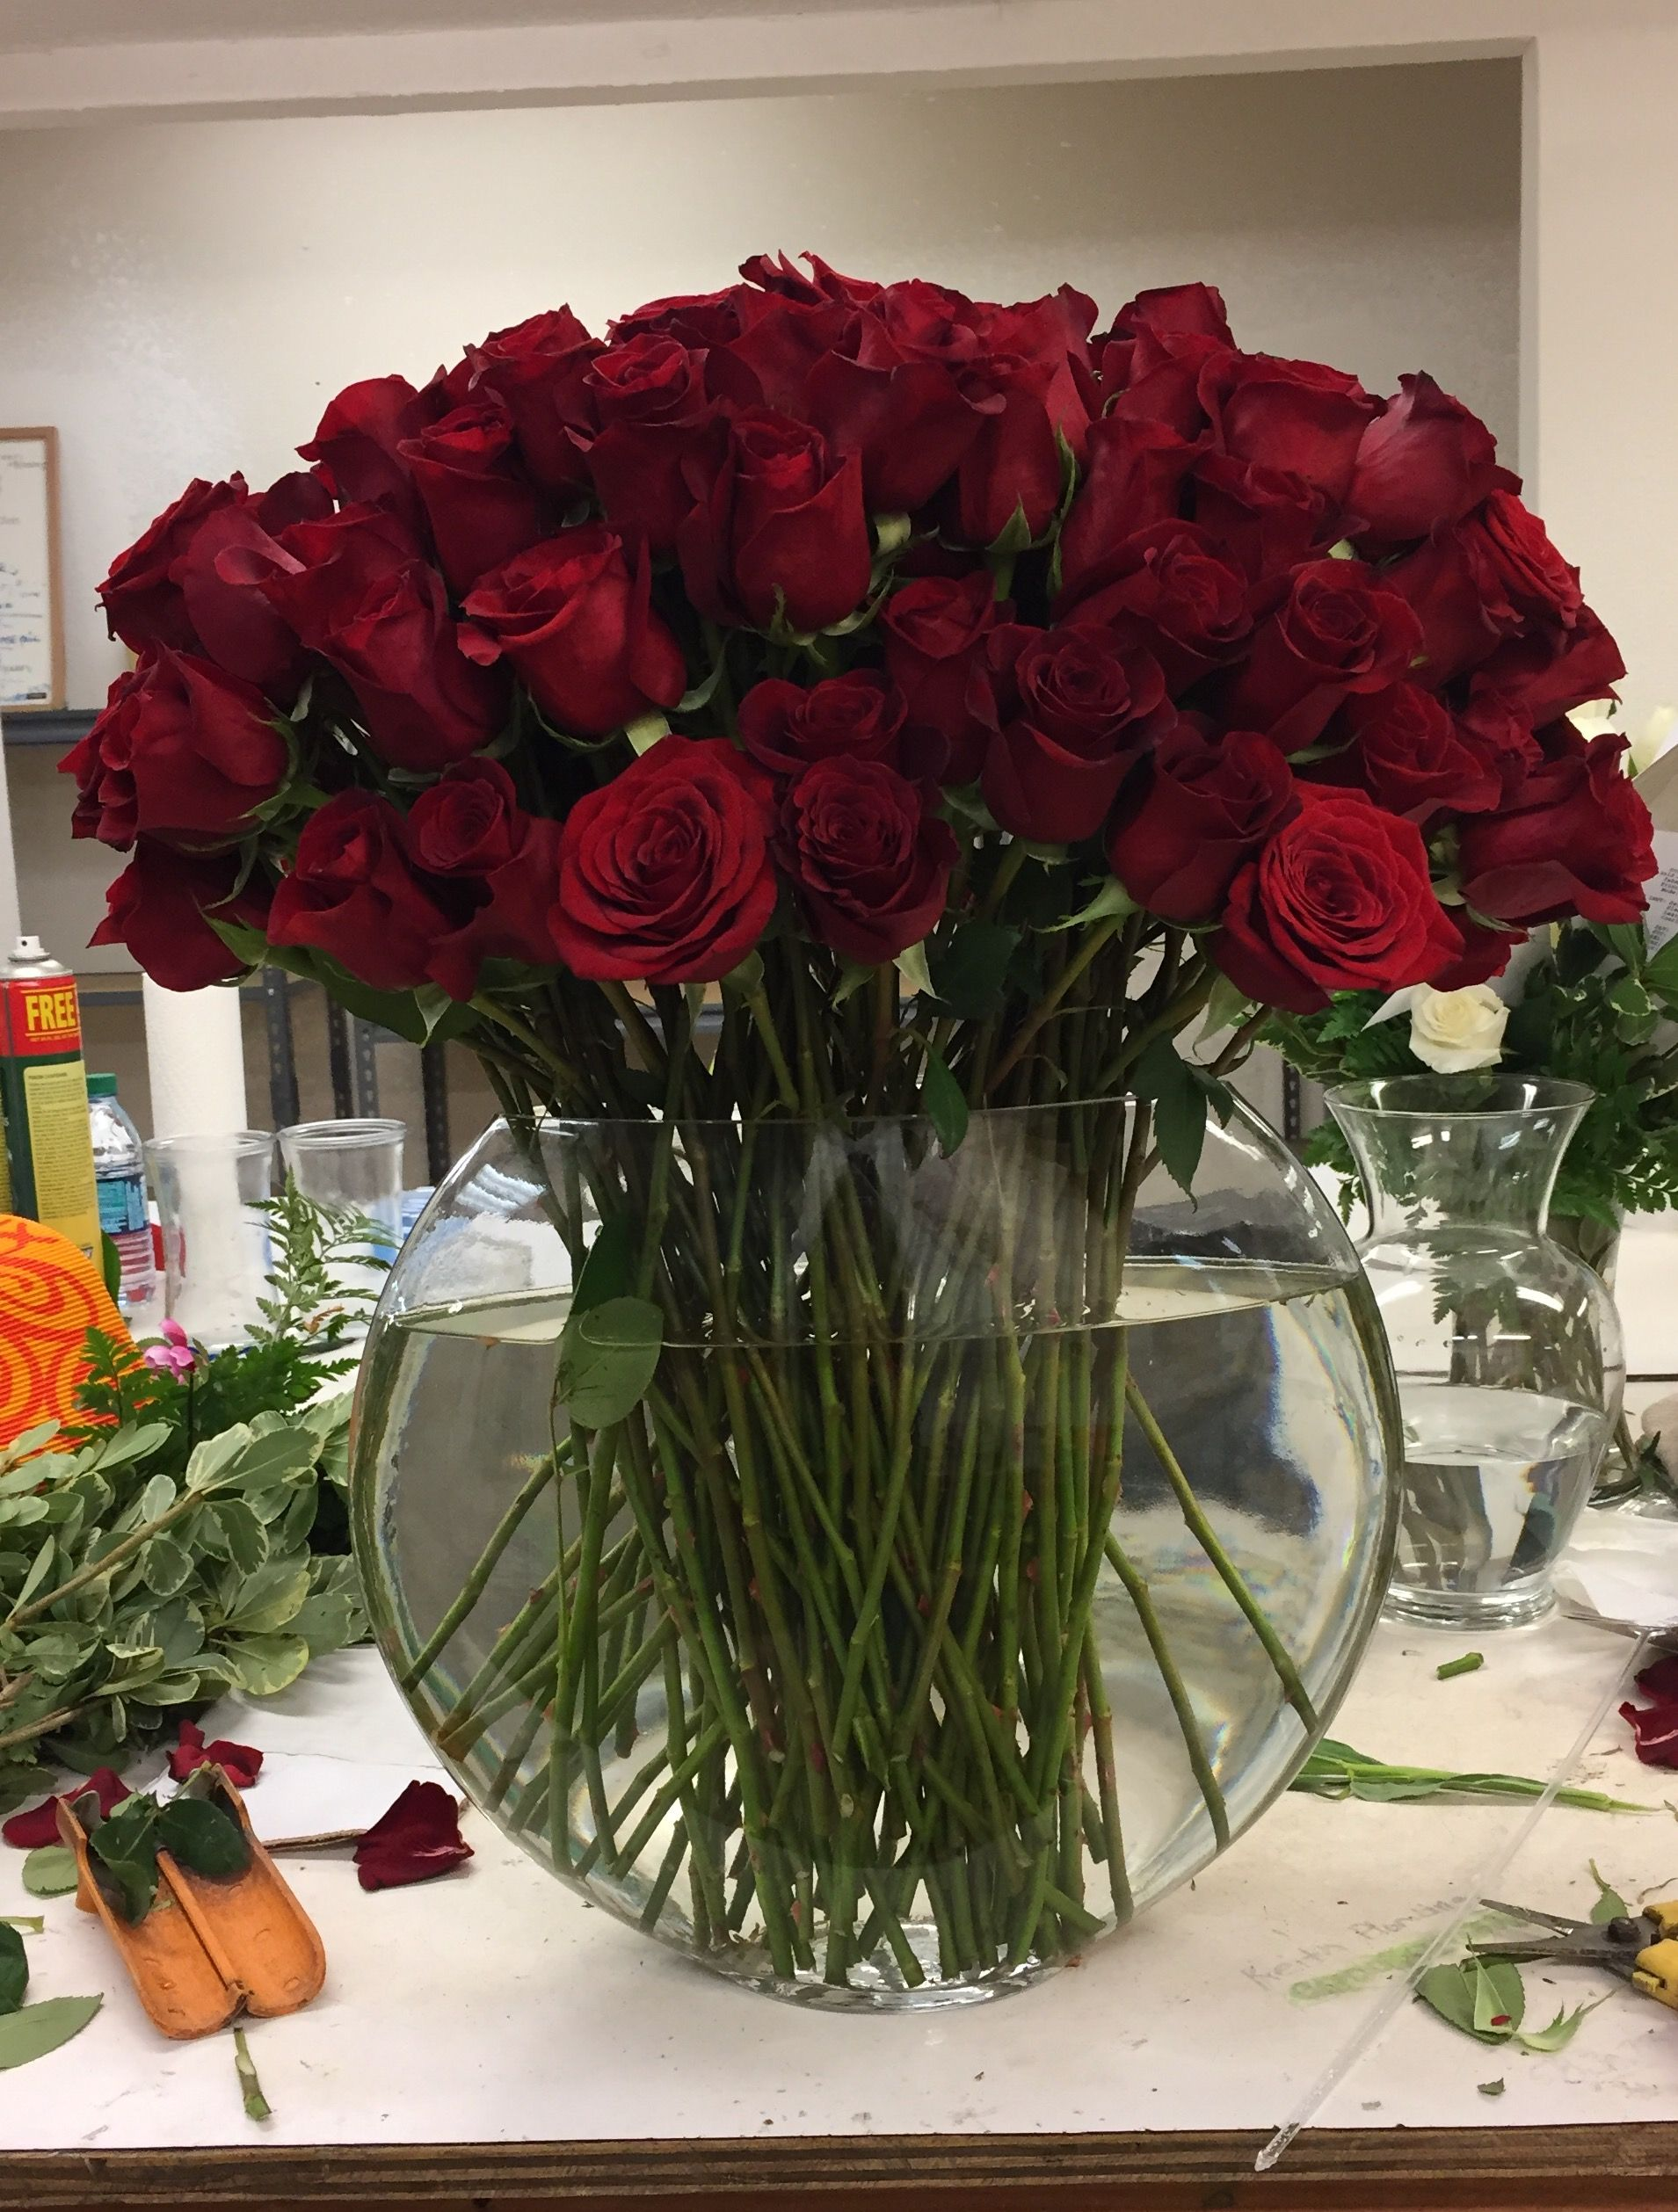 100 Roses Flower Arrangements Rose Vase 100 Roses